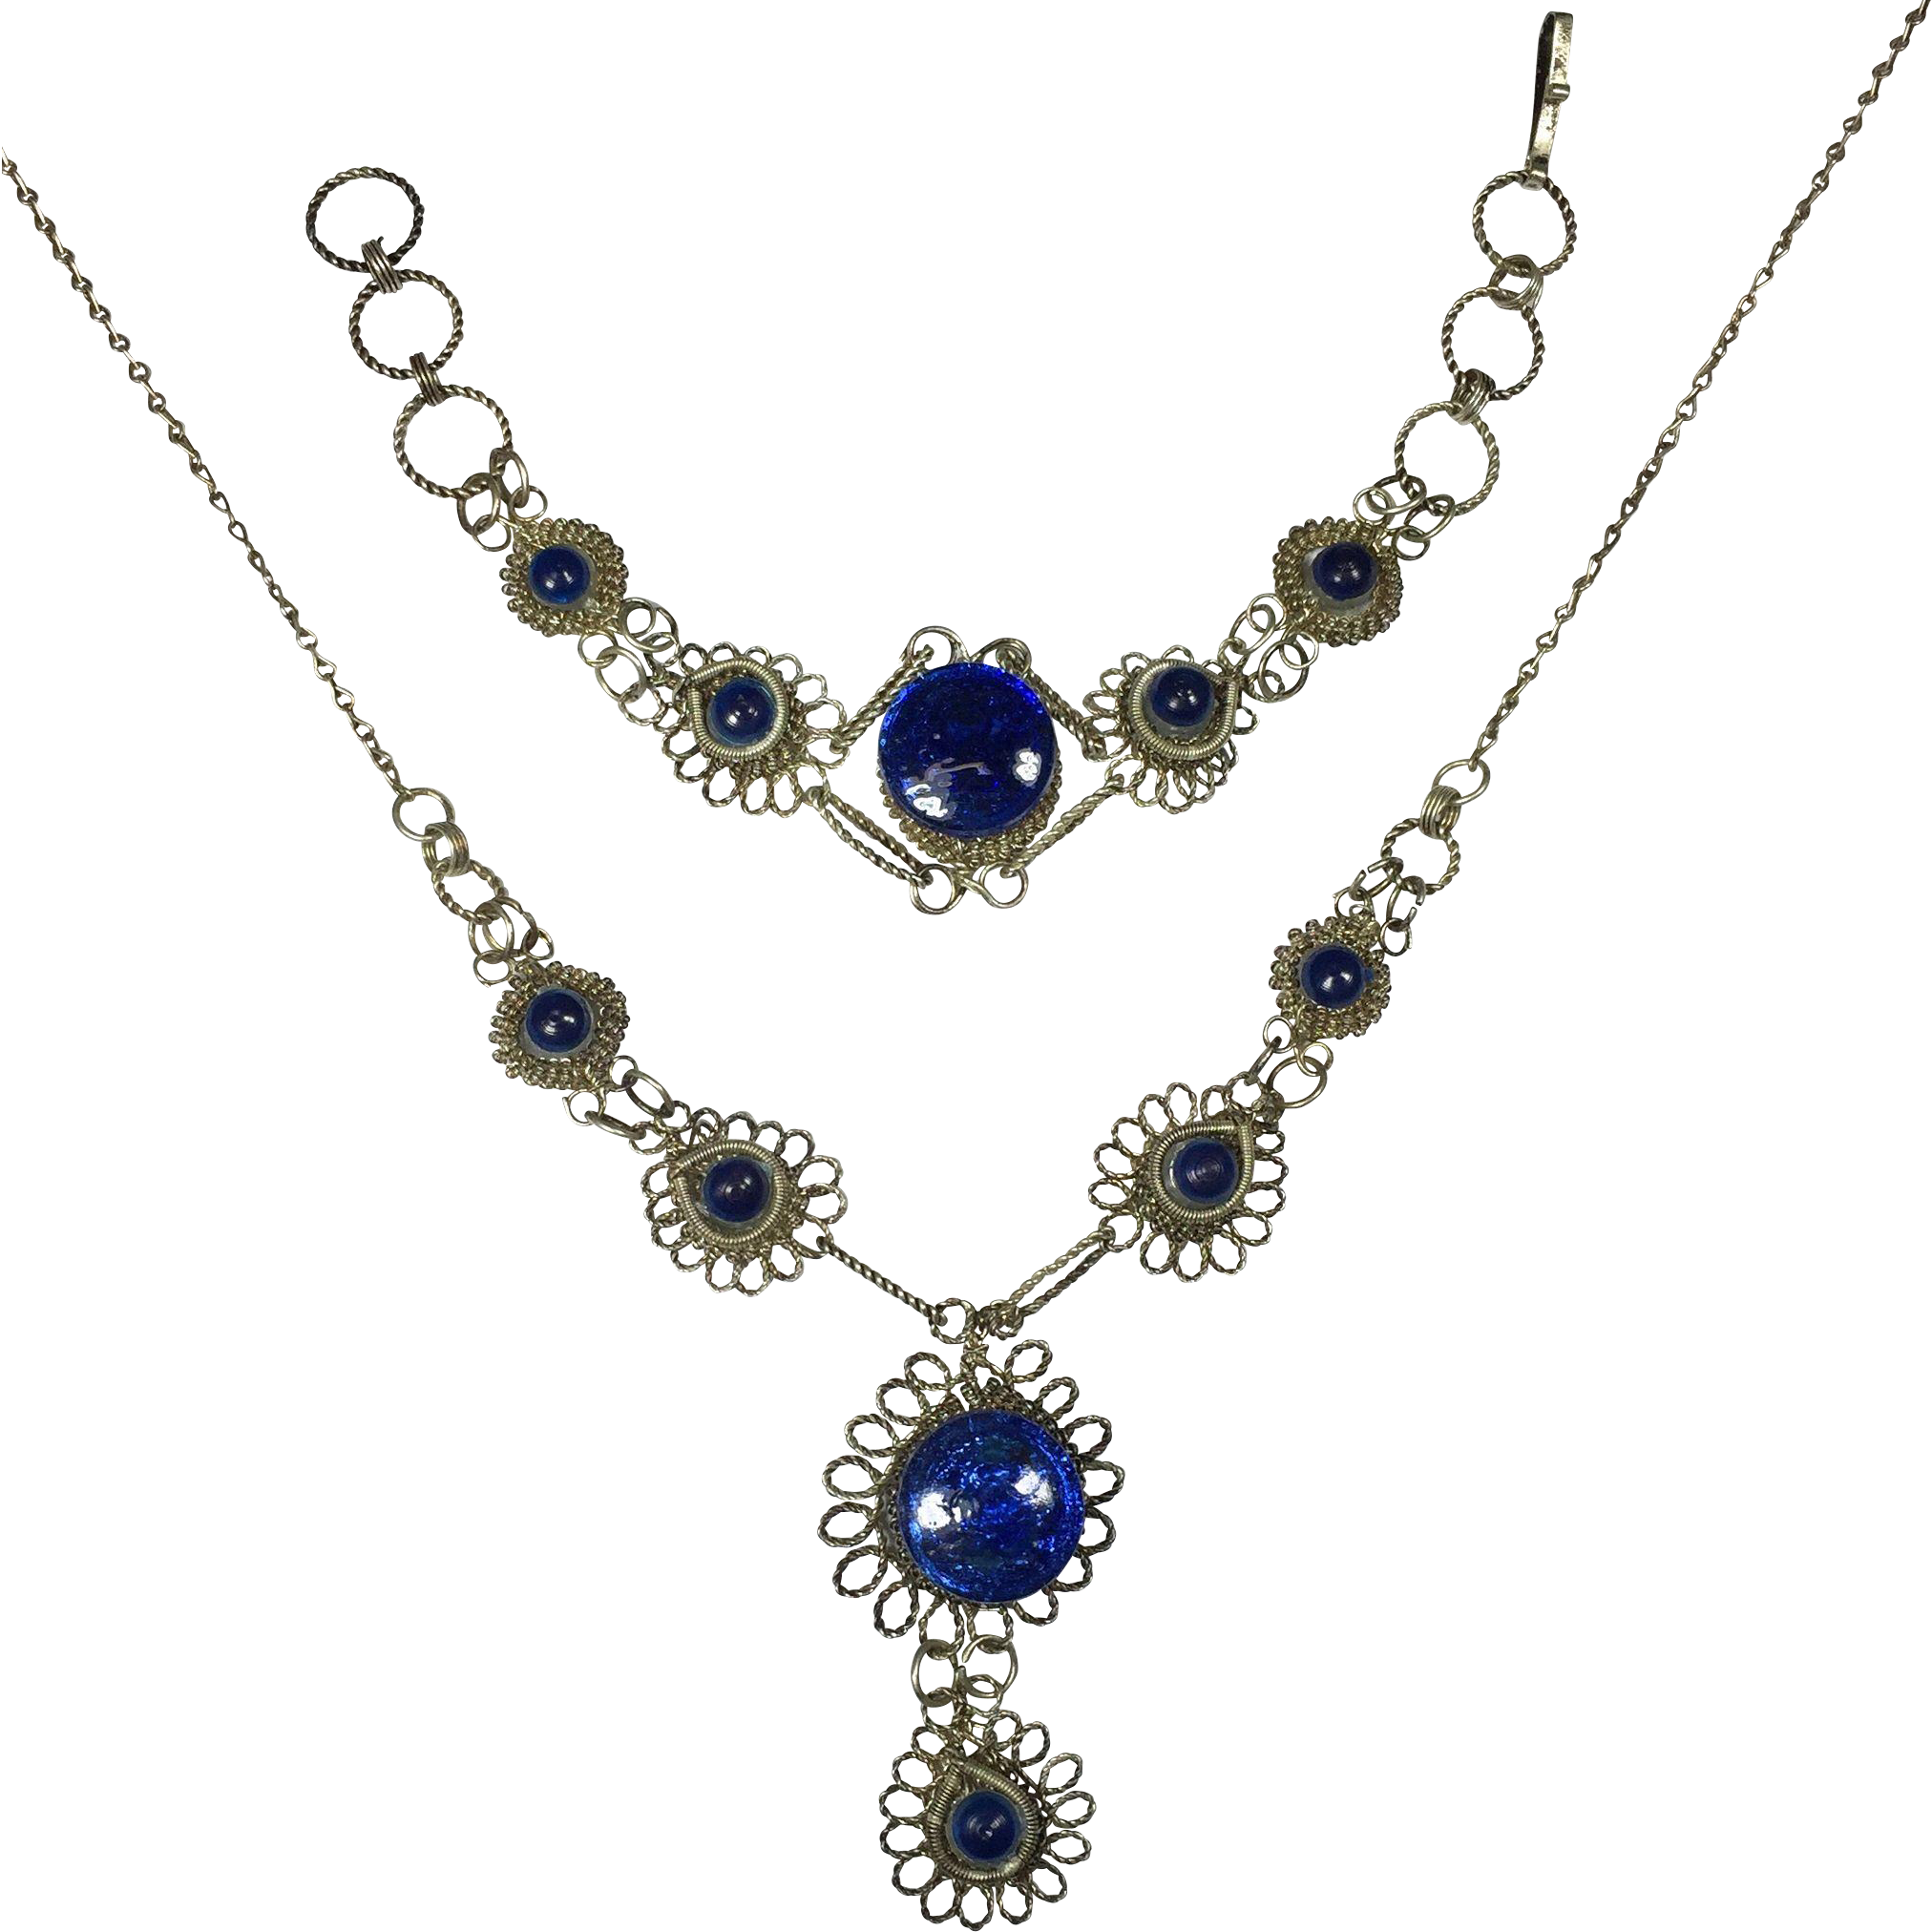 Vintage Spun Silver Cobalt Blue Glass Necklace & Bracelet